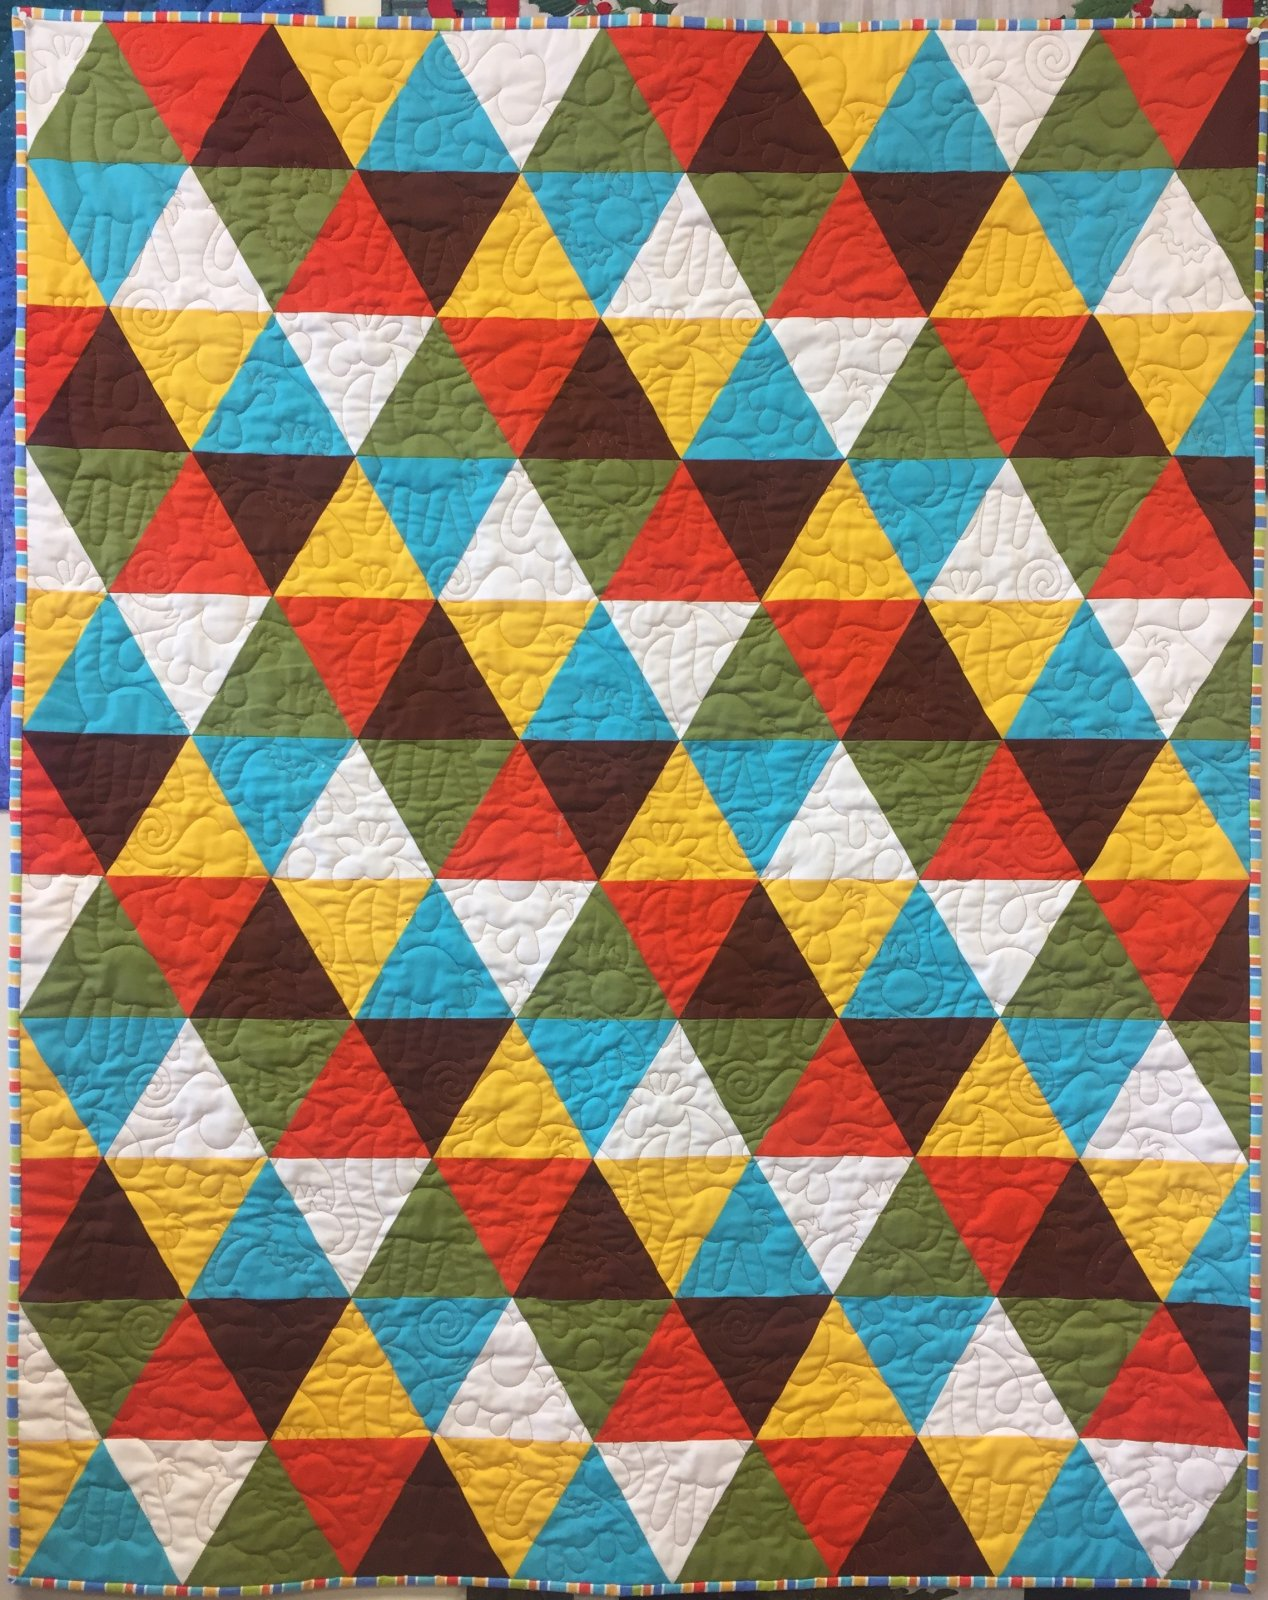 Kyles Quilt Orange, Yellow, Blue, Brown, Green 40''x50'' with Backing